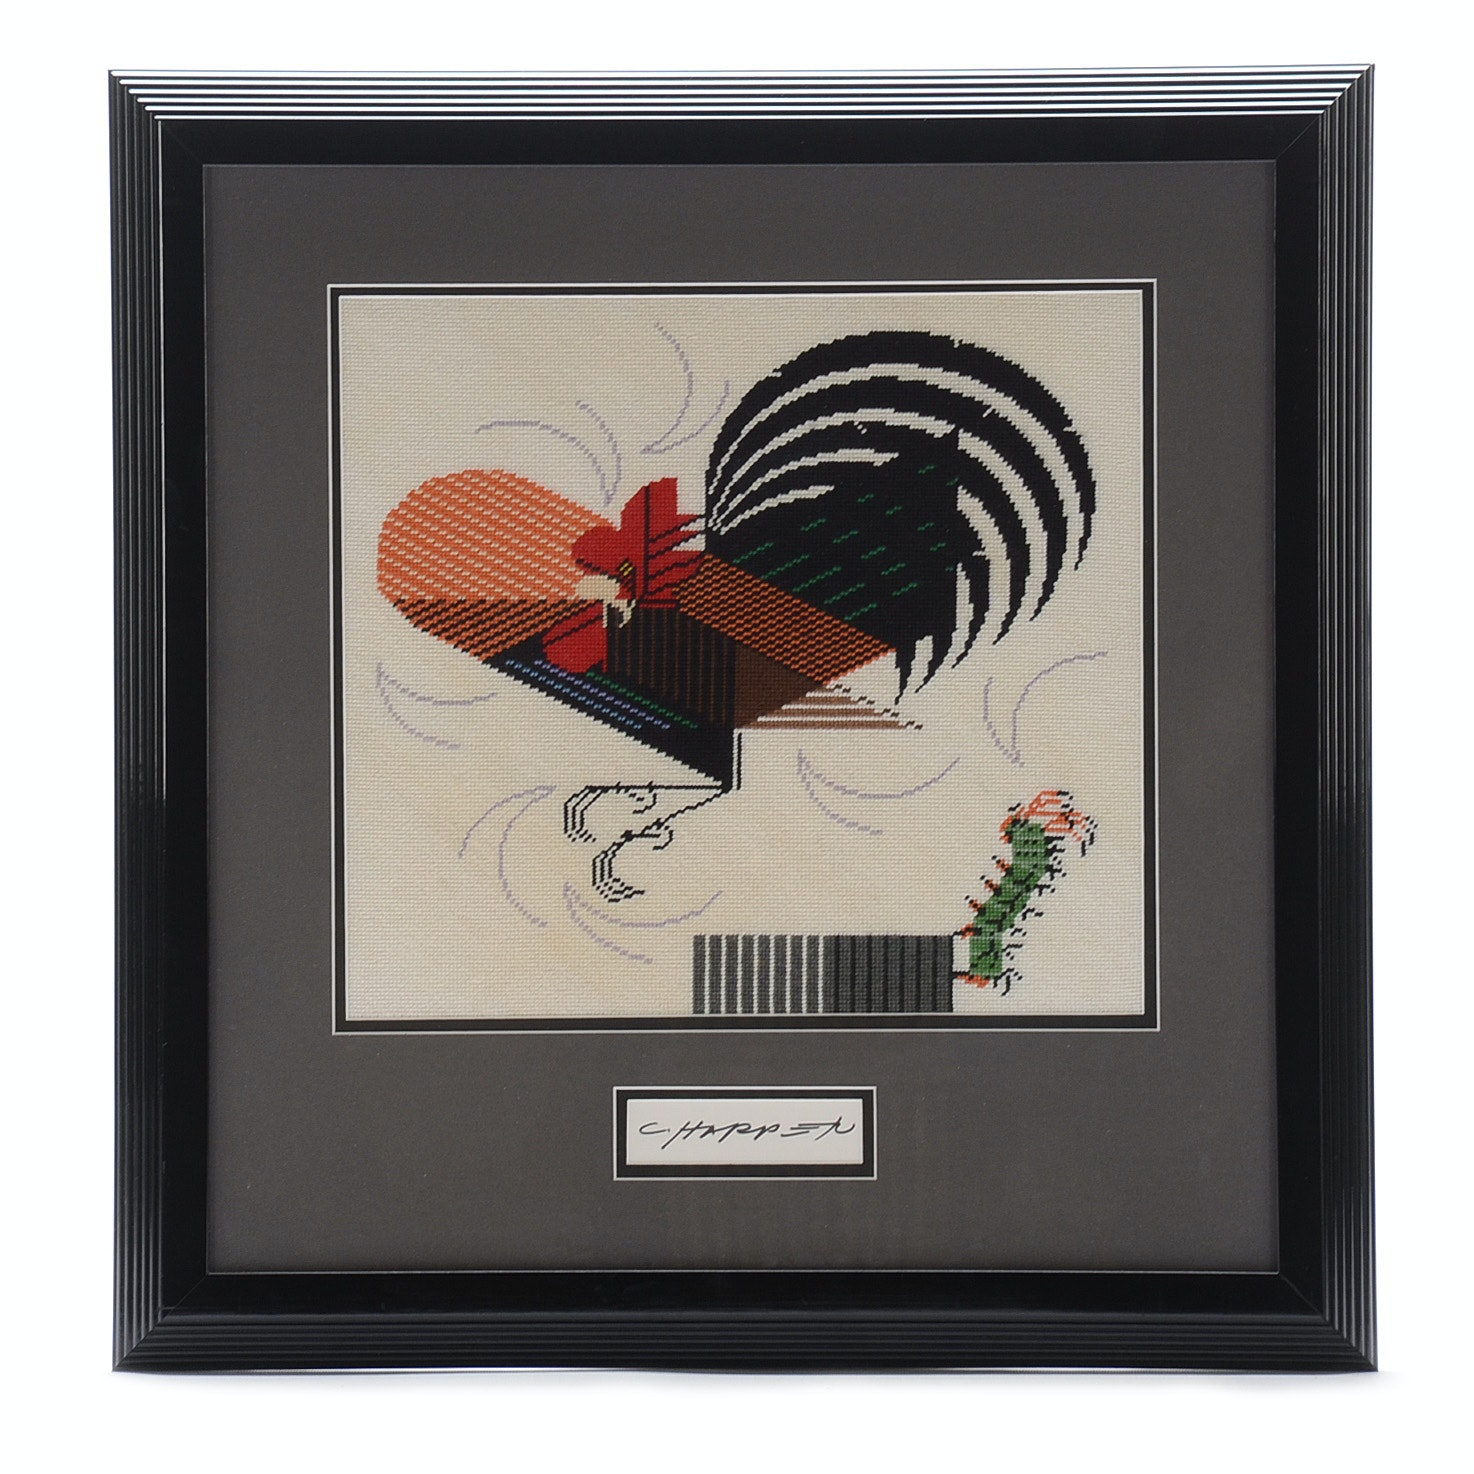 "Richard Gegner Needlepoint after Charley Harper ""Crawling Tall"""